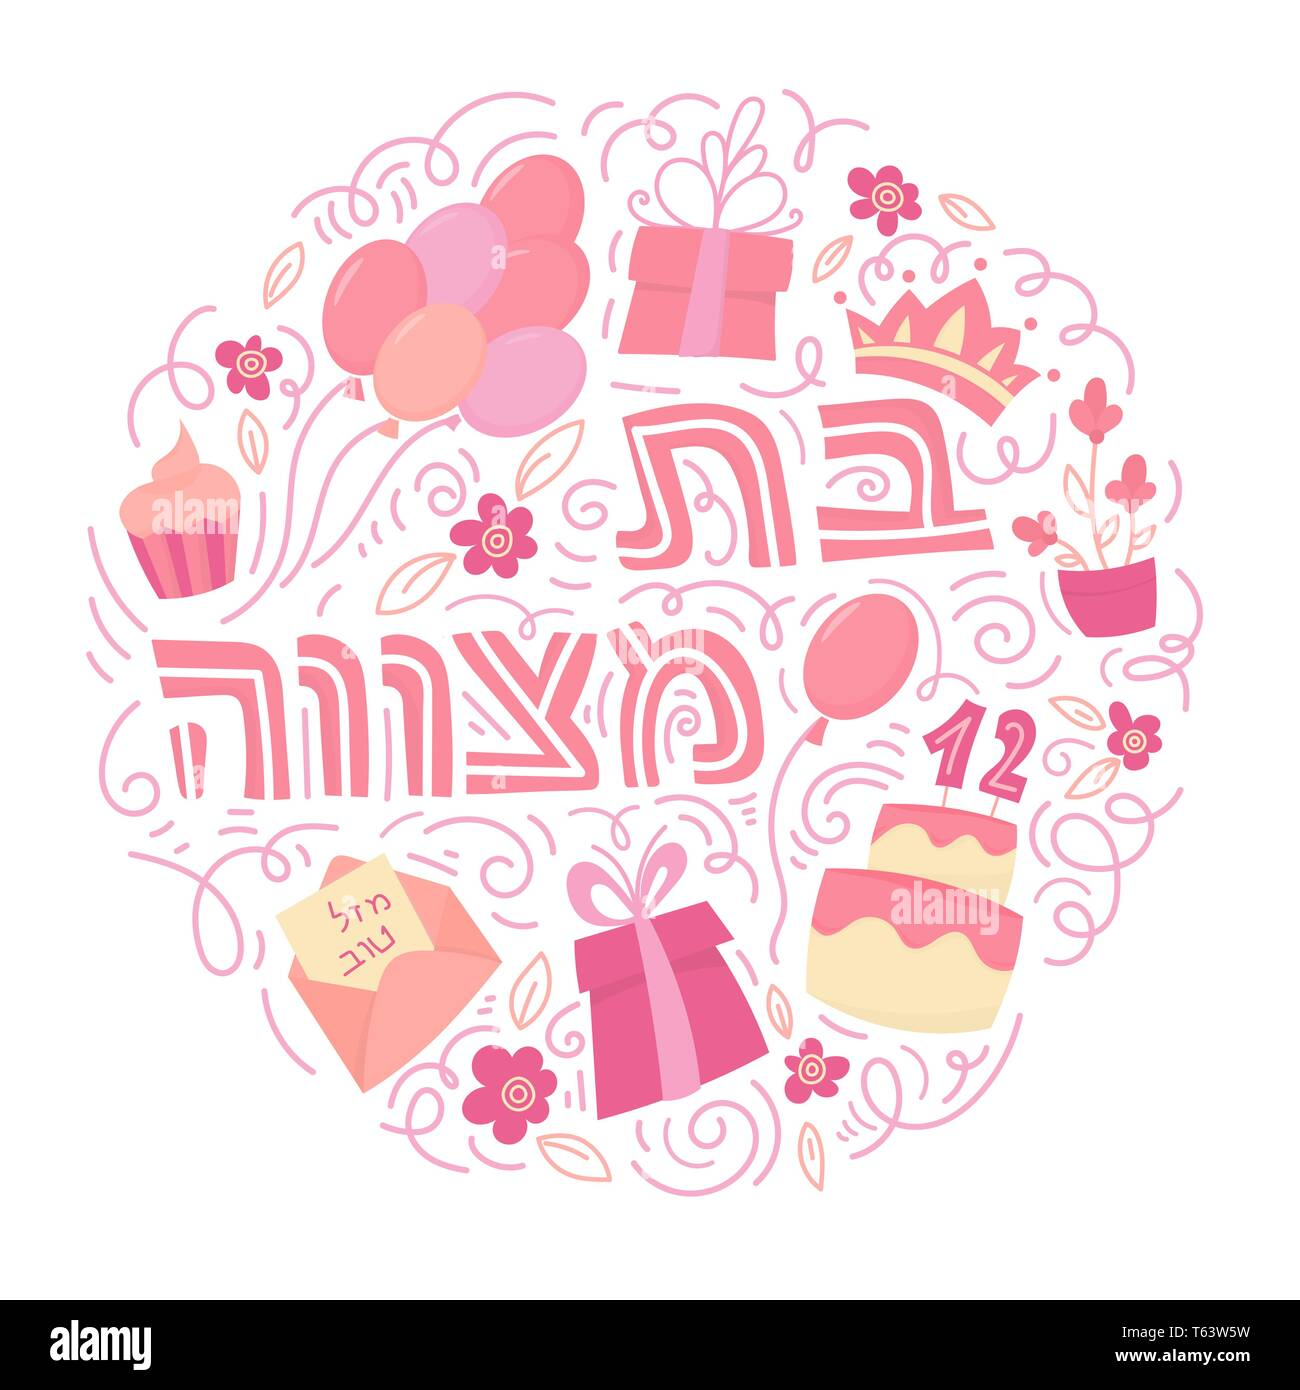 Bat Mitzvah greeting card. Hand drawn vector illustration. Cake with the number 12, balloons, gifts and flowers. Doodle style. Hebrew text: Bat Mitzhvah - Stock Vector